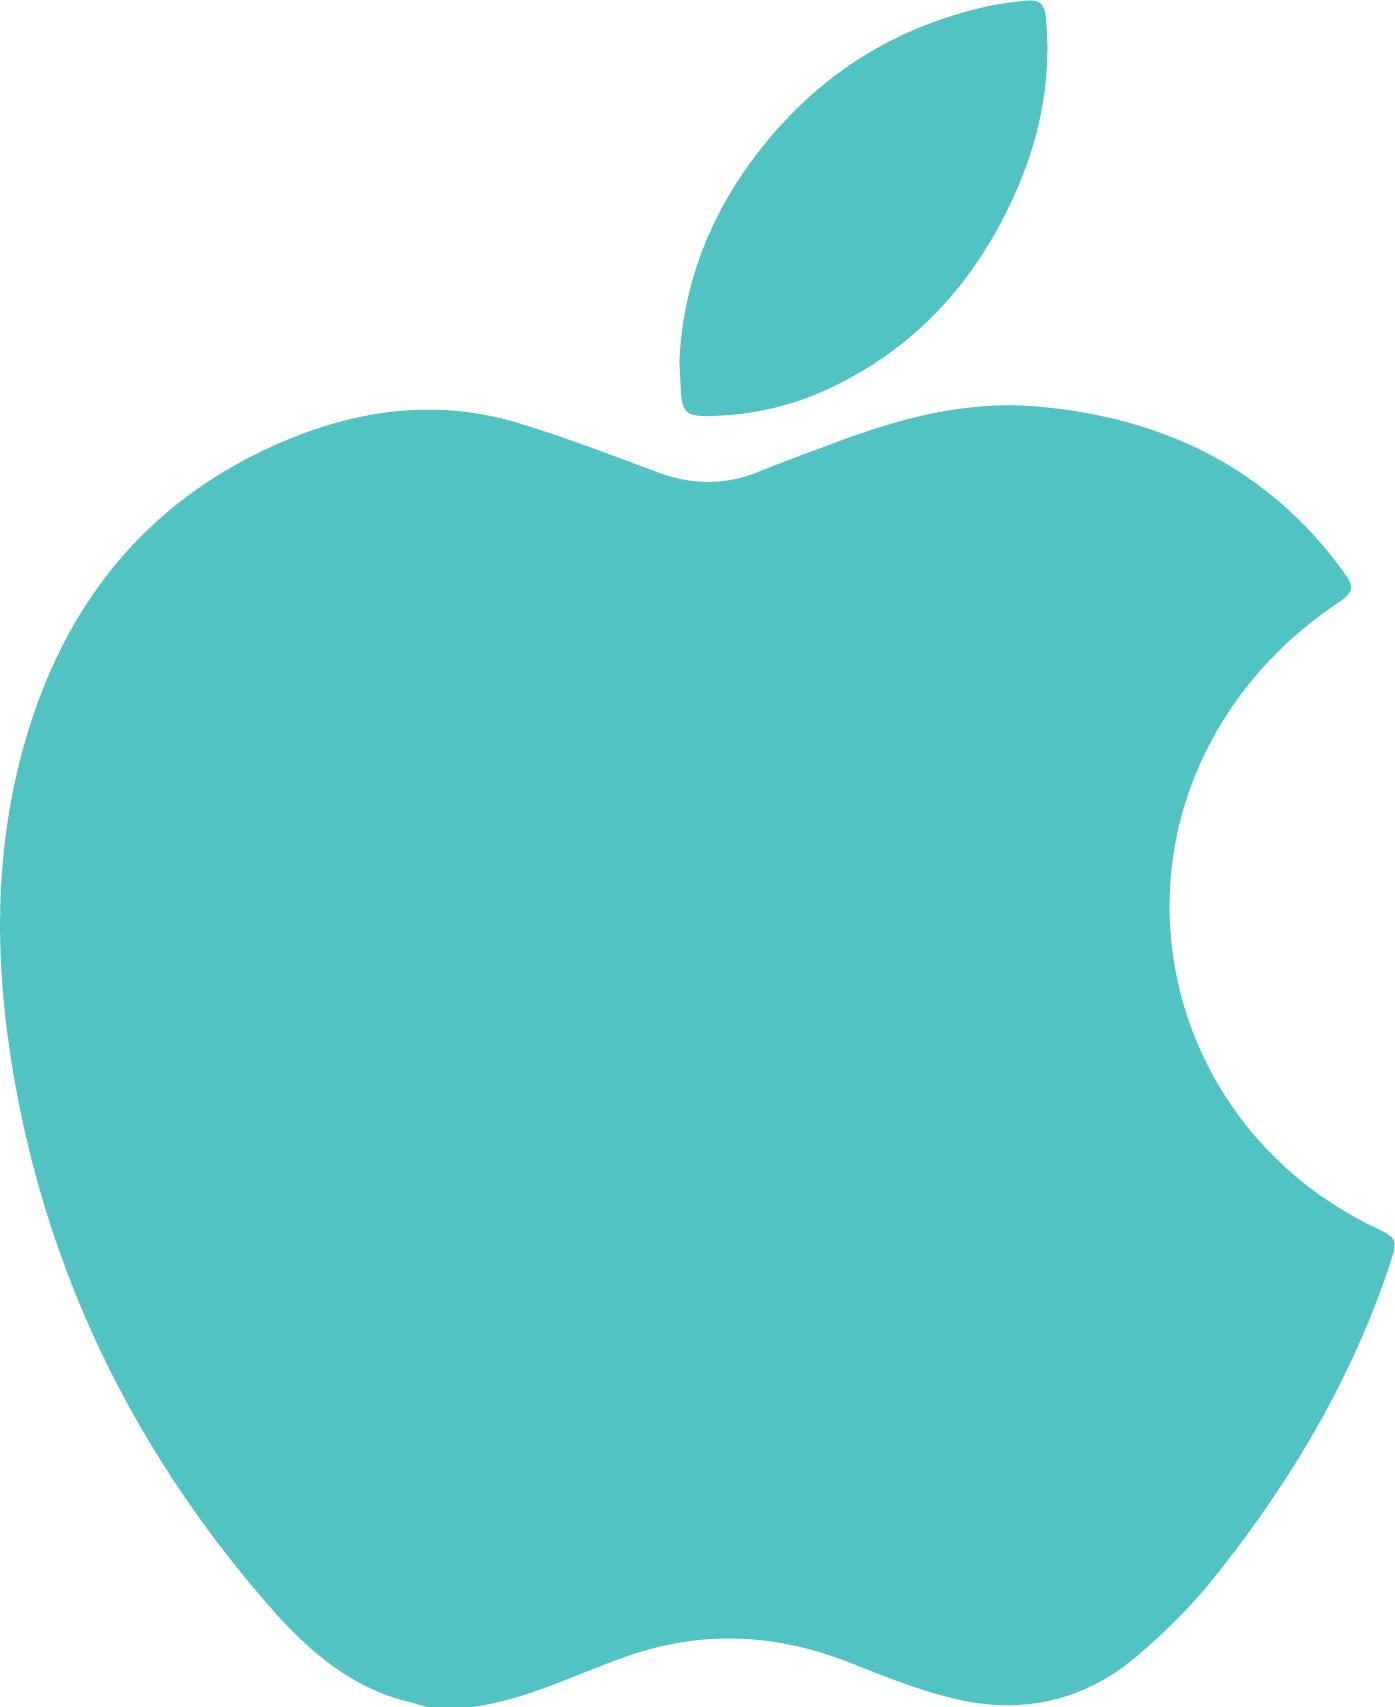 Apple Icon (Teal)